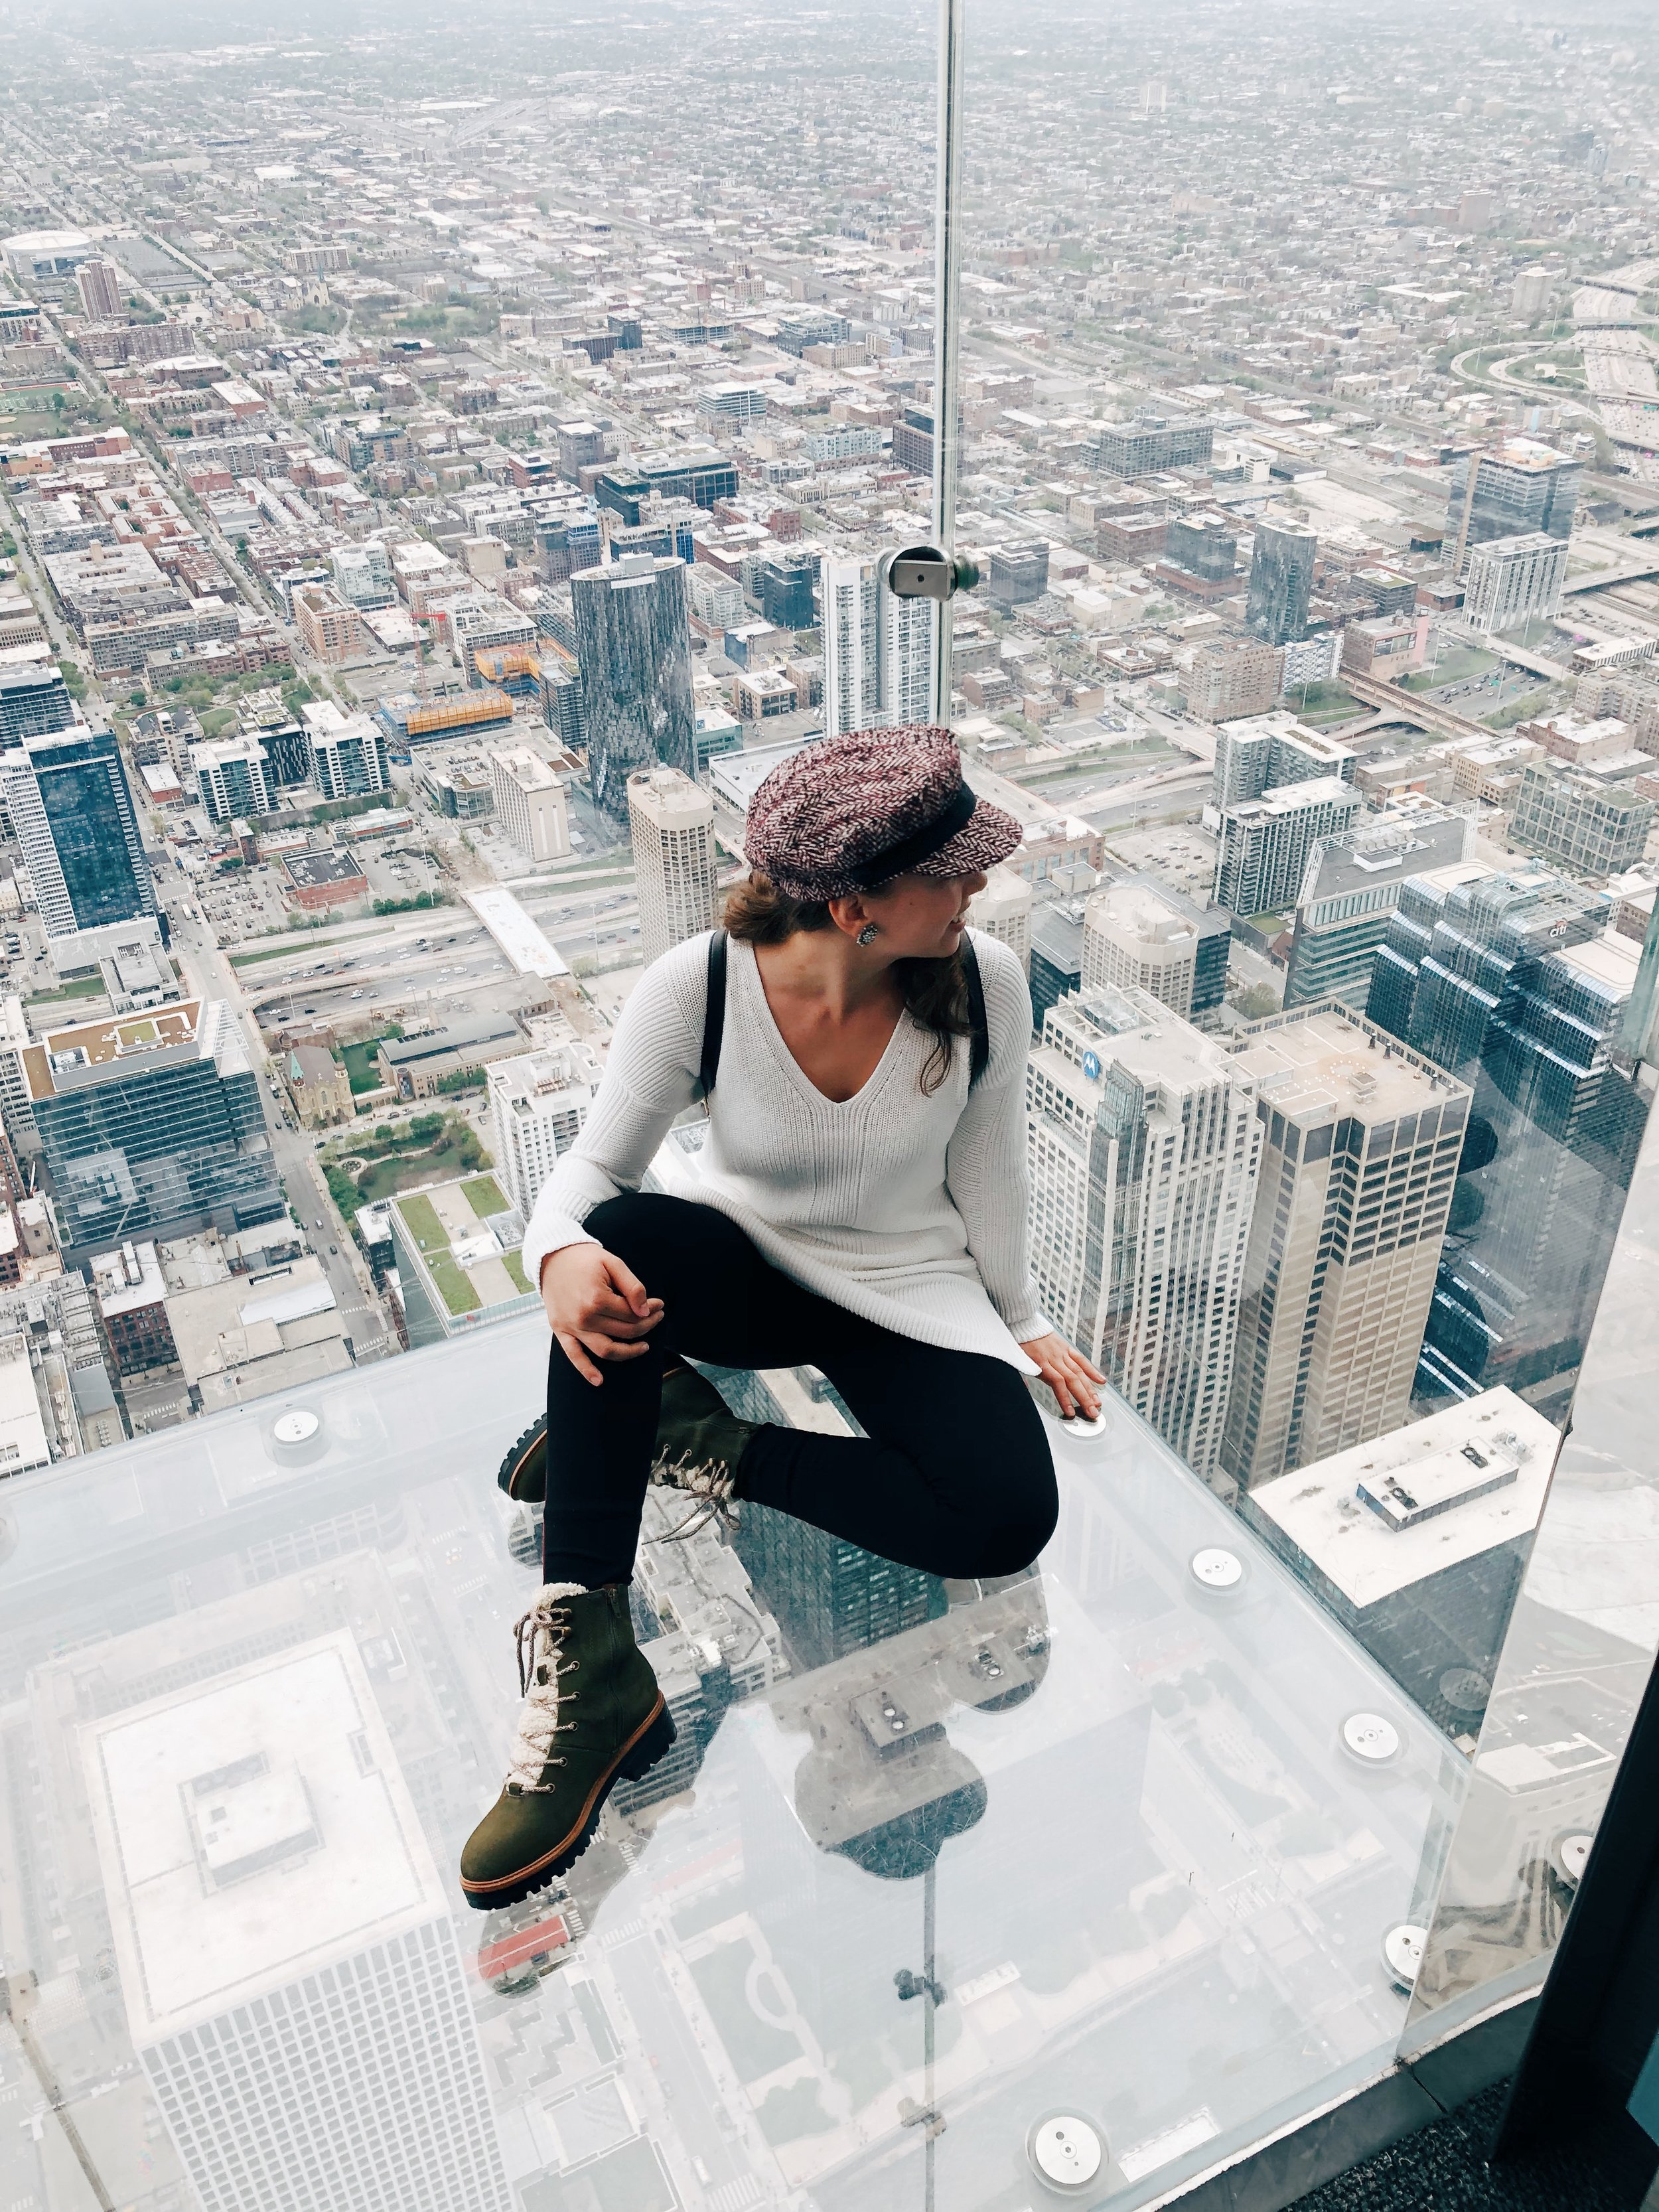 Chicago Mother's Day Trip - #Skydeck